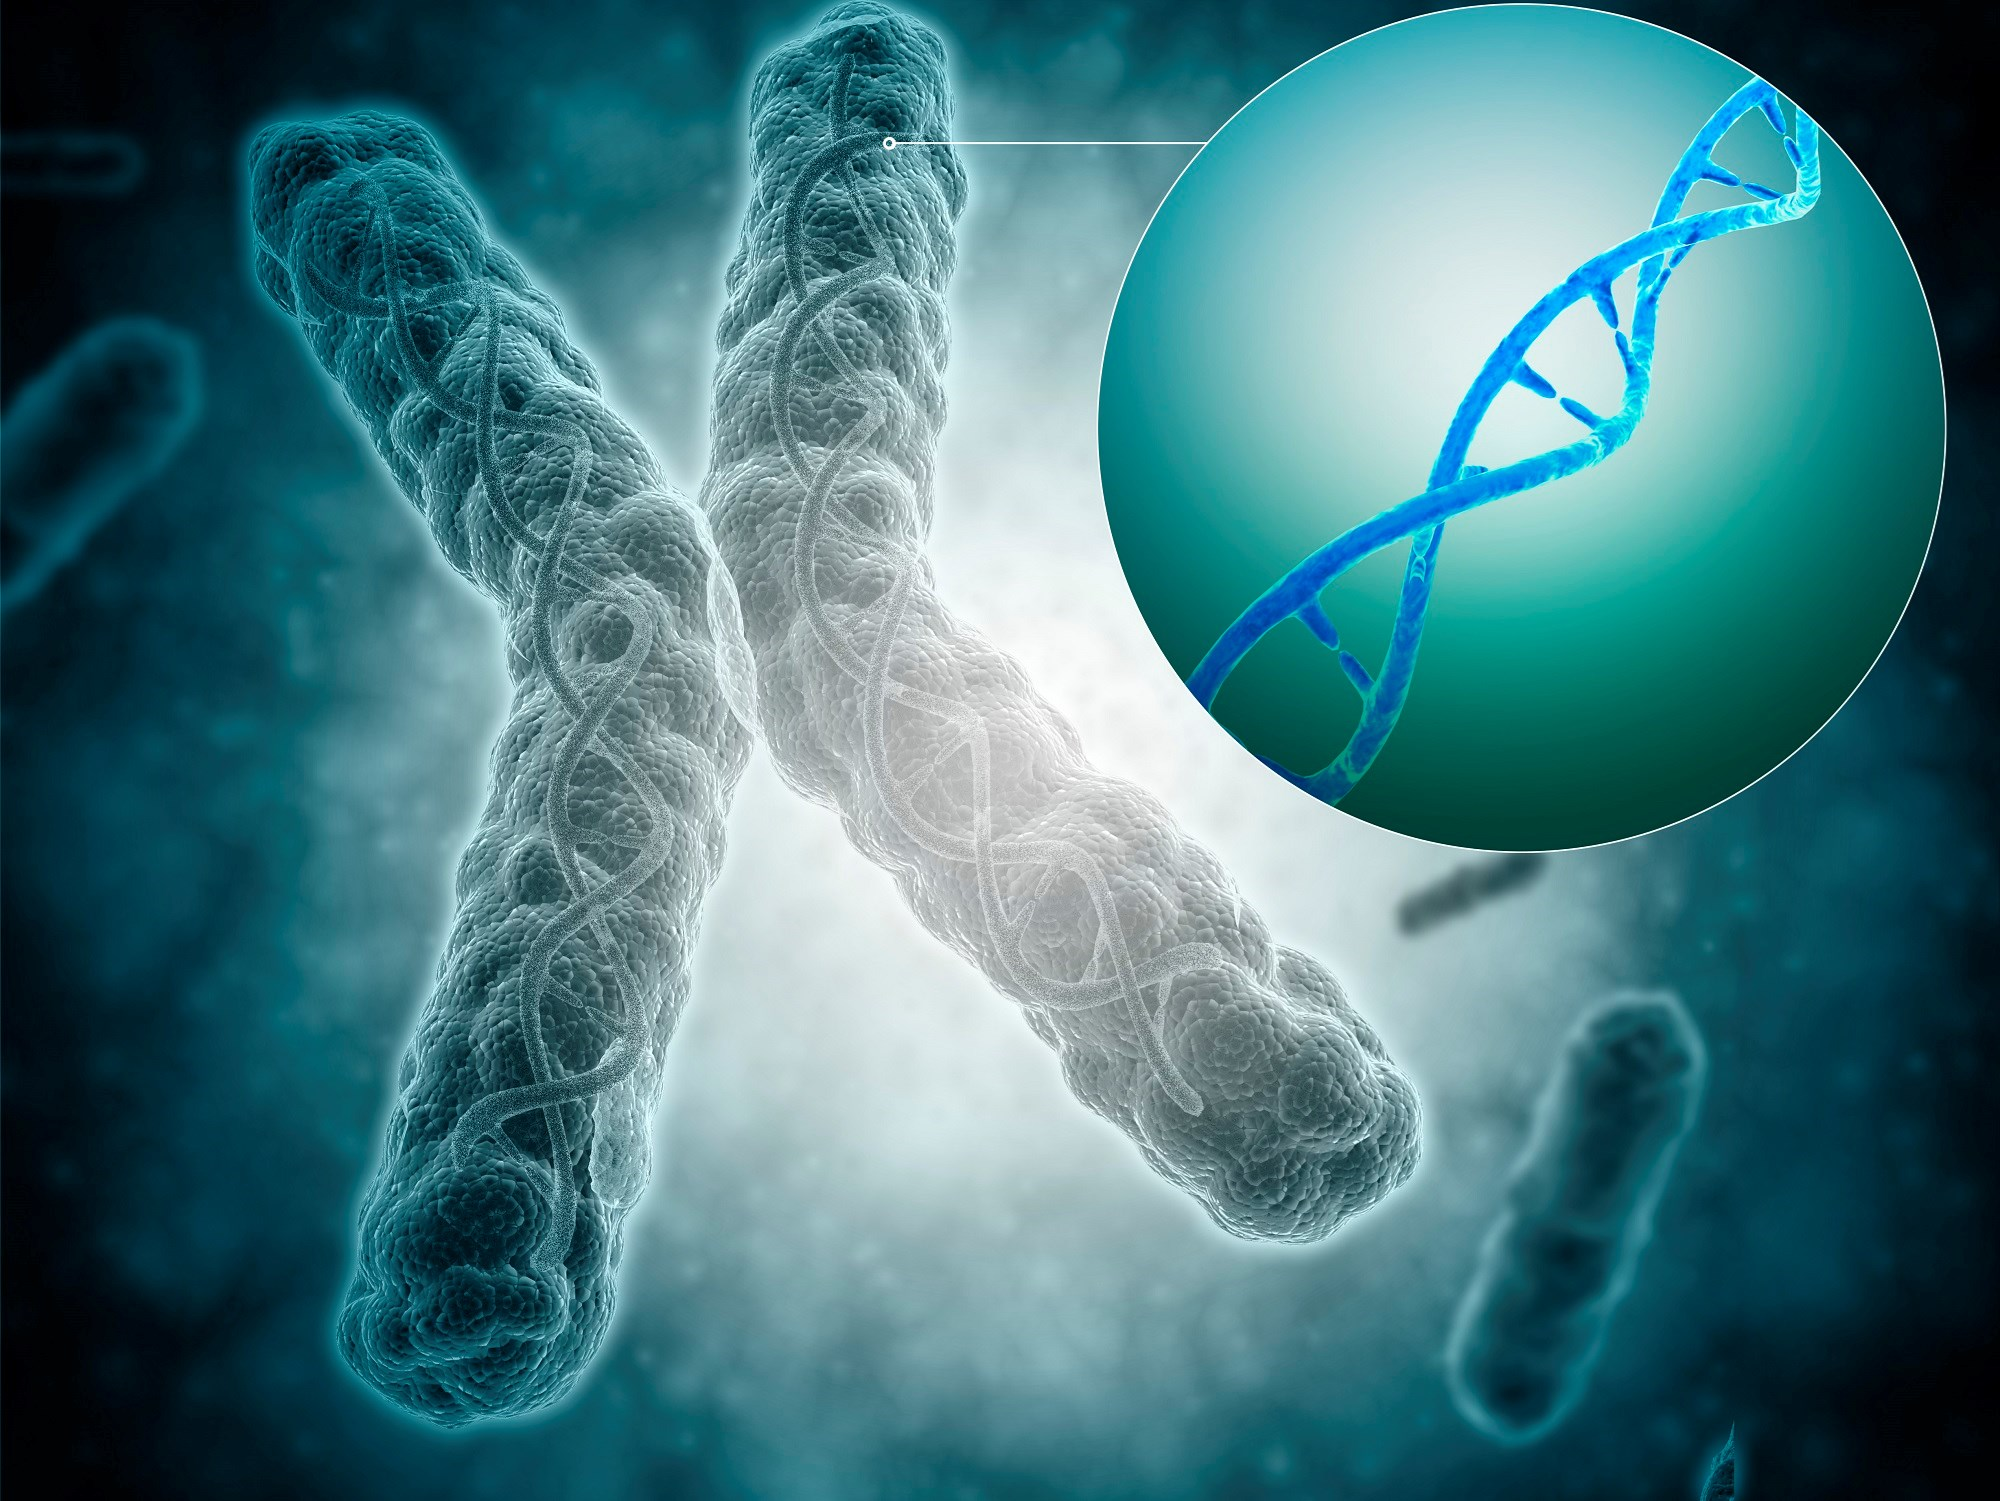 Shorter Telomeres May Predict Poor Outcomes in COPD